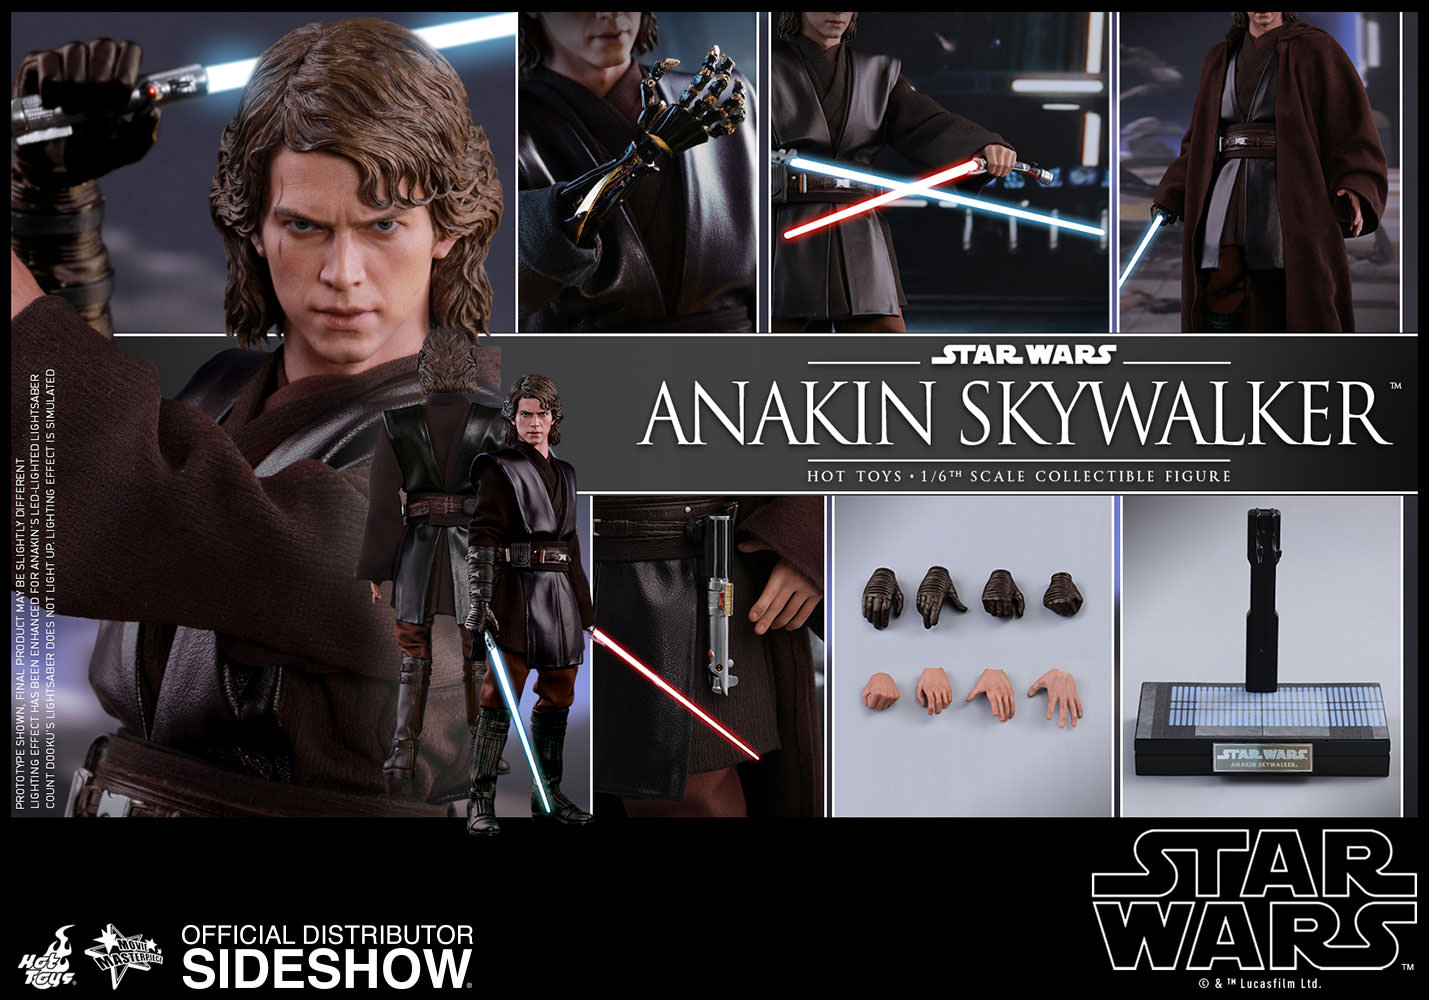 https://www.sideshowtoy.com/assets/products/903139-anakin-skywalker/lg/star-wars-anakin-skywalker-sixth-scale-figure-hot-toys-903139-26.jpg